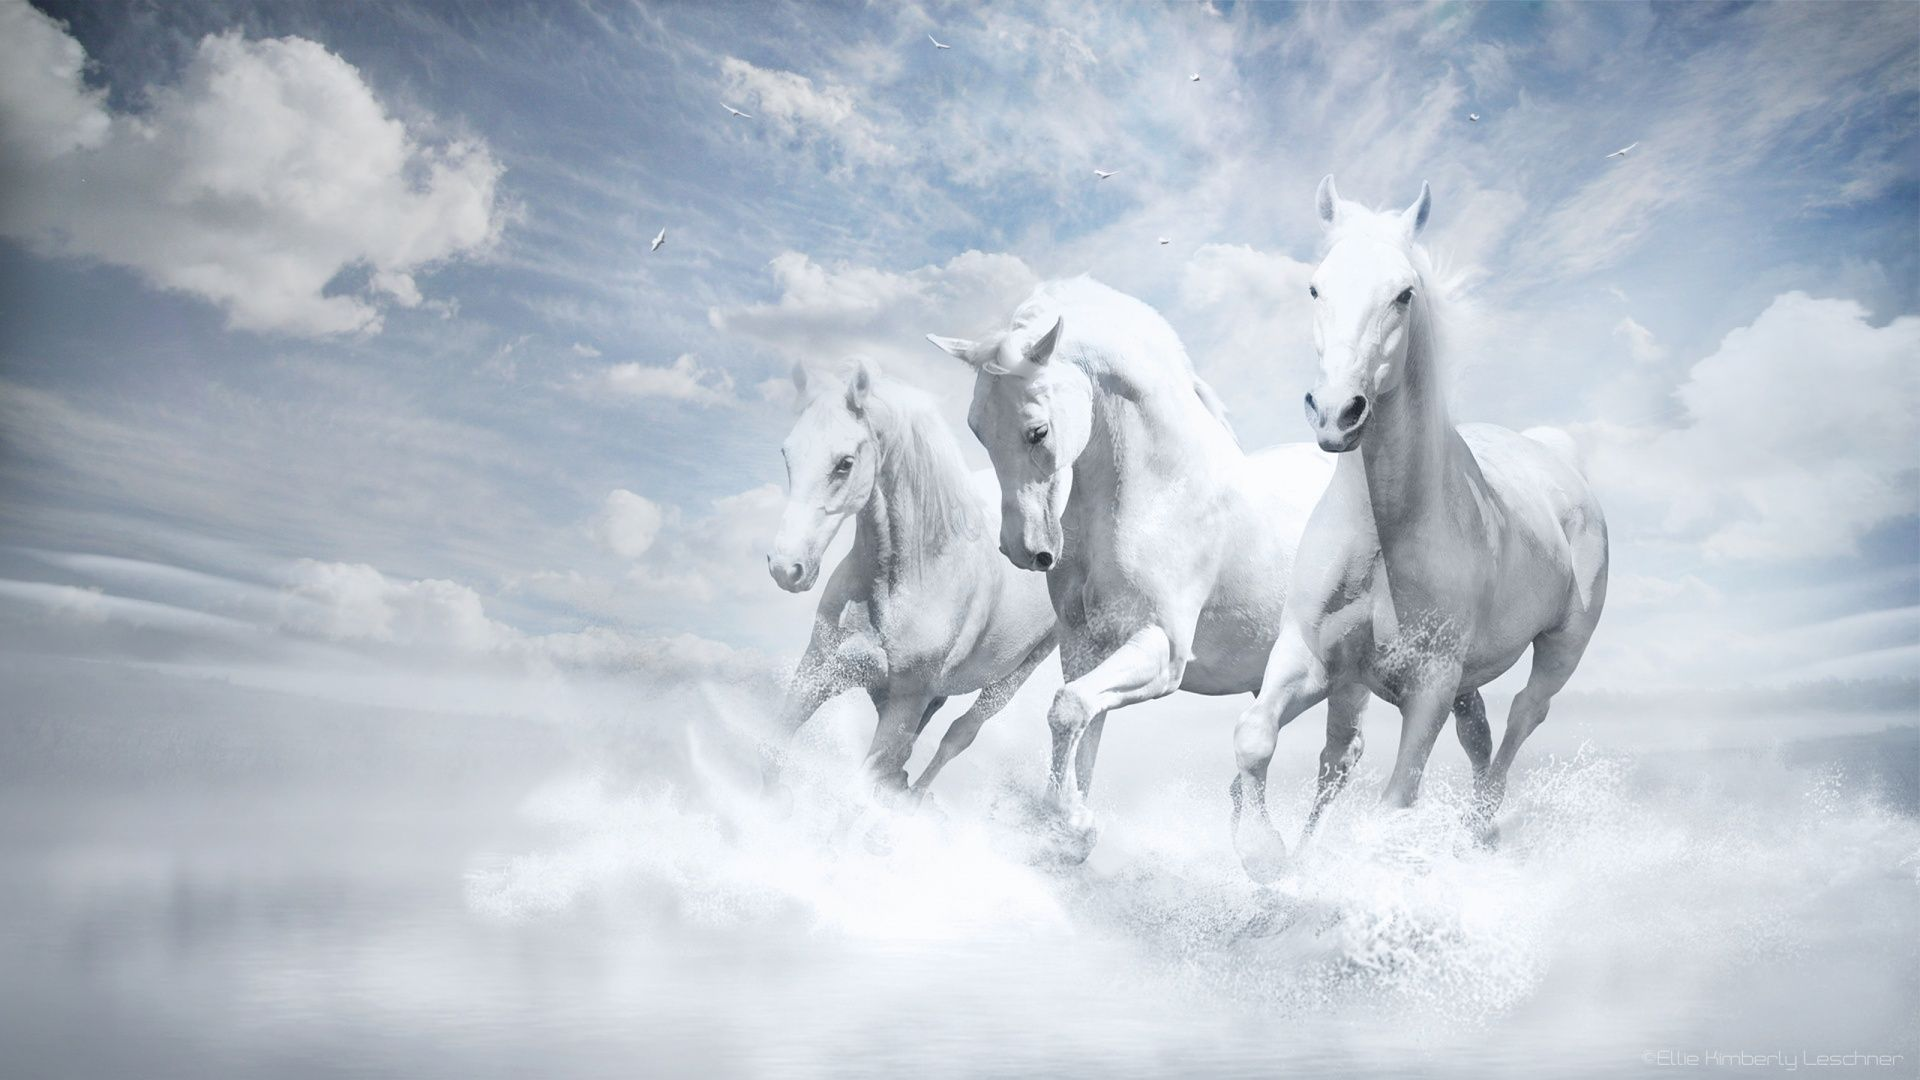 White Horses Hd Wallpaper At Wallpapersmap Com Horse Wallpaper White Horses Horses